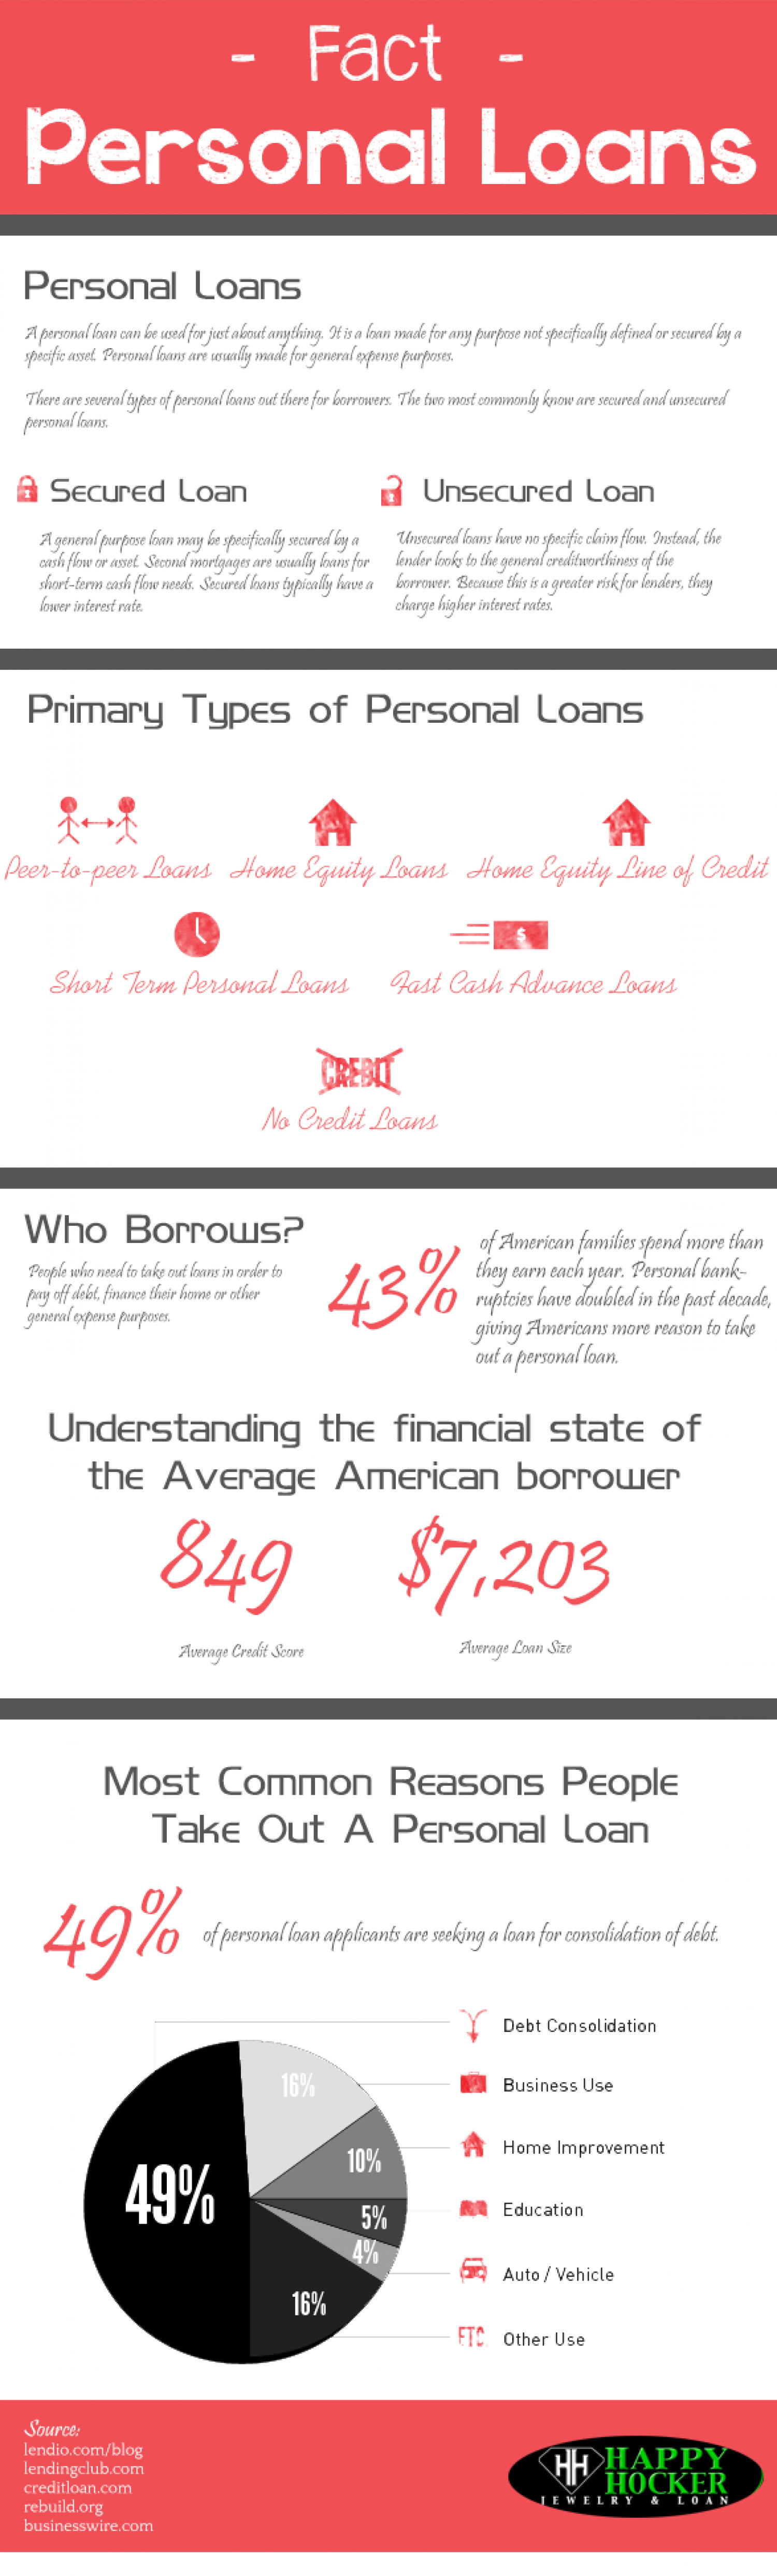 Fact Personal Loans Infographic